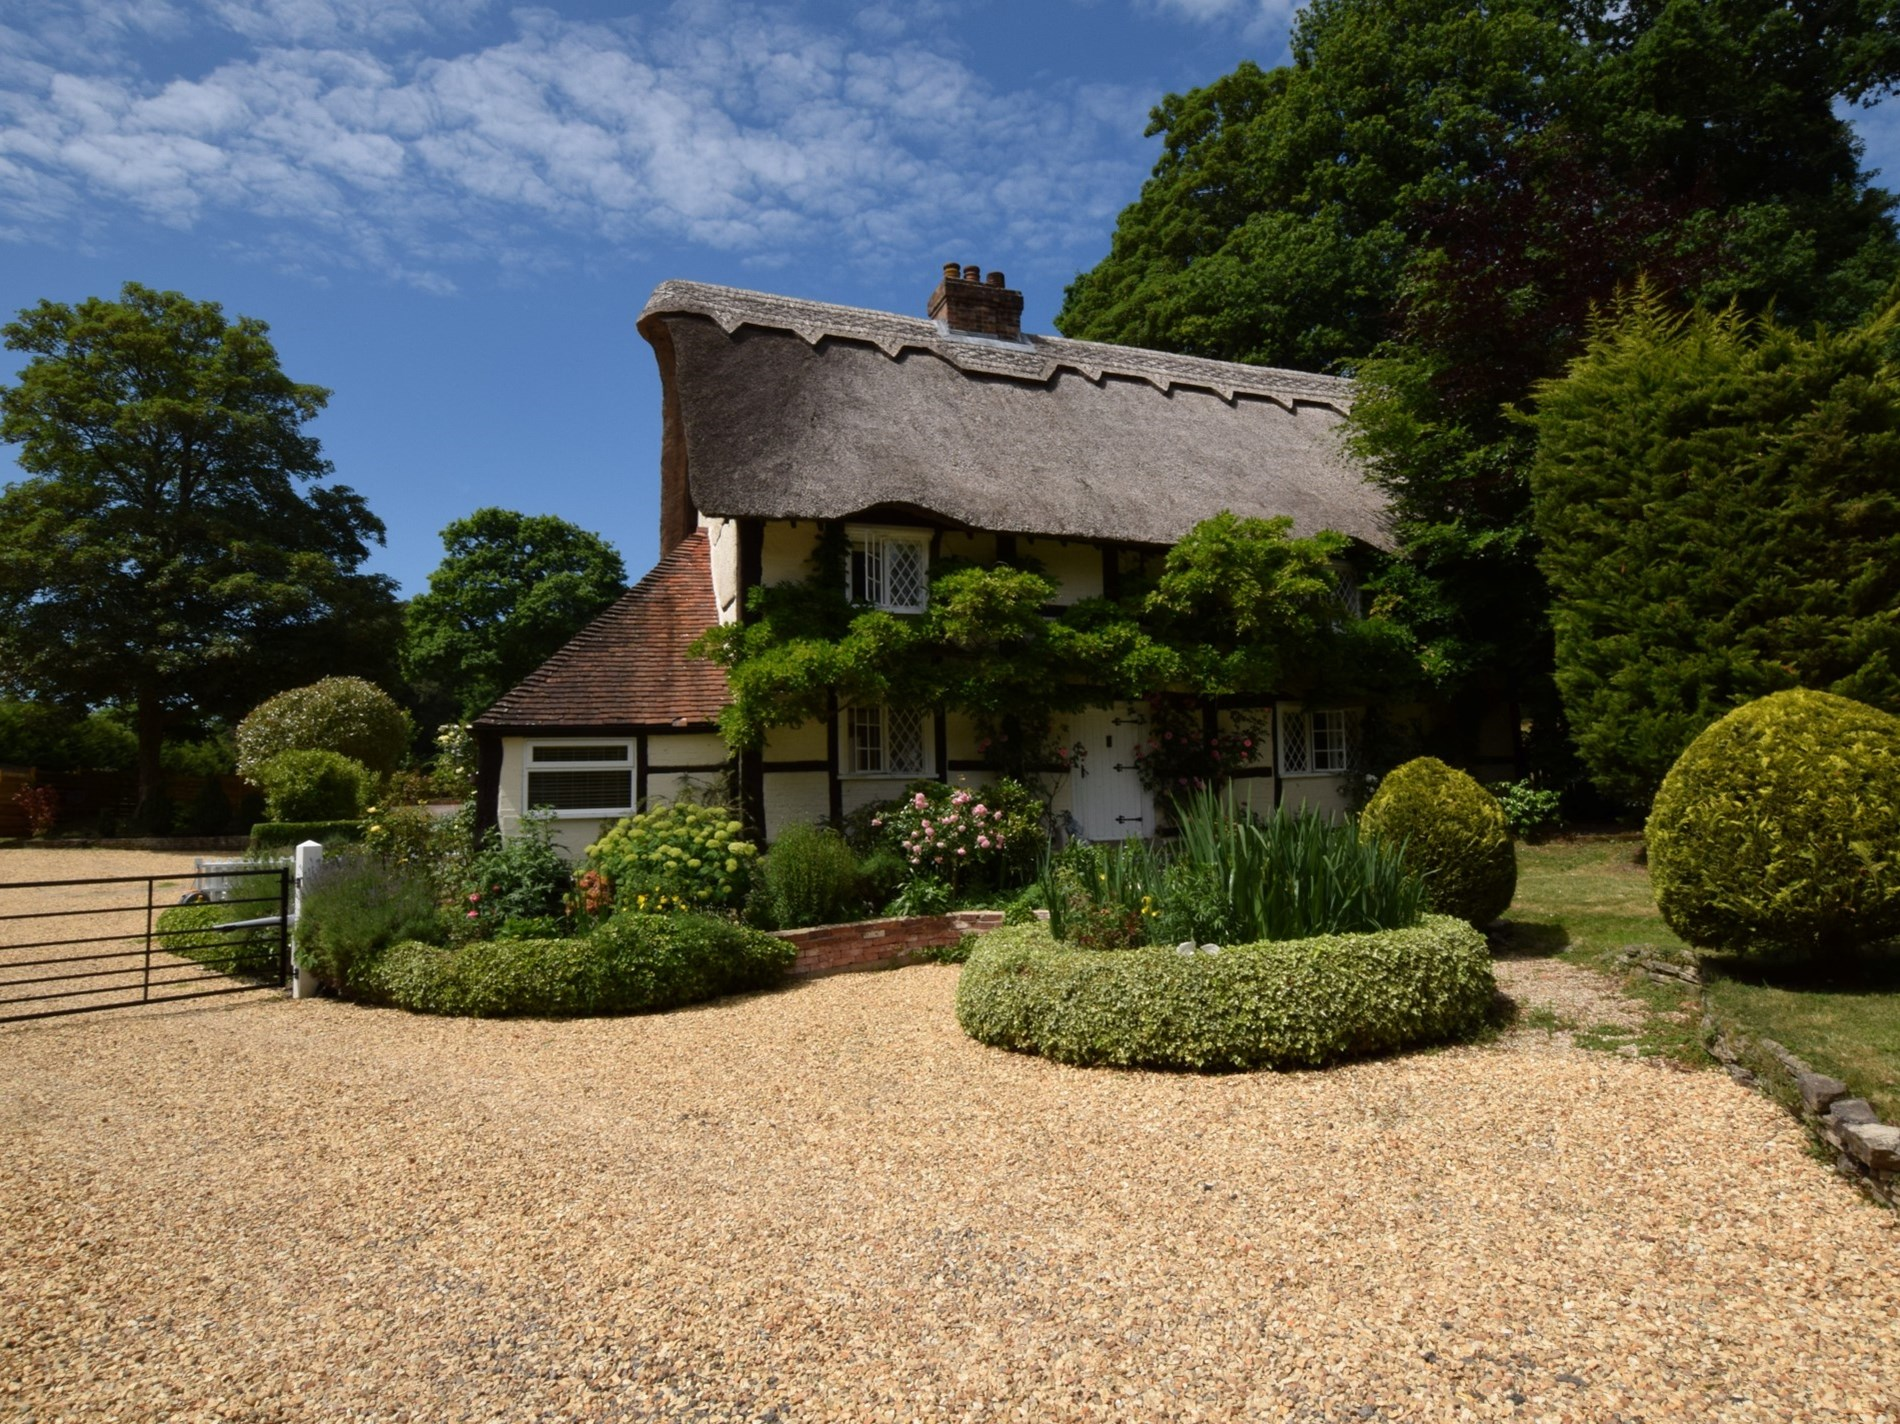 Ferienhaus in Lymington